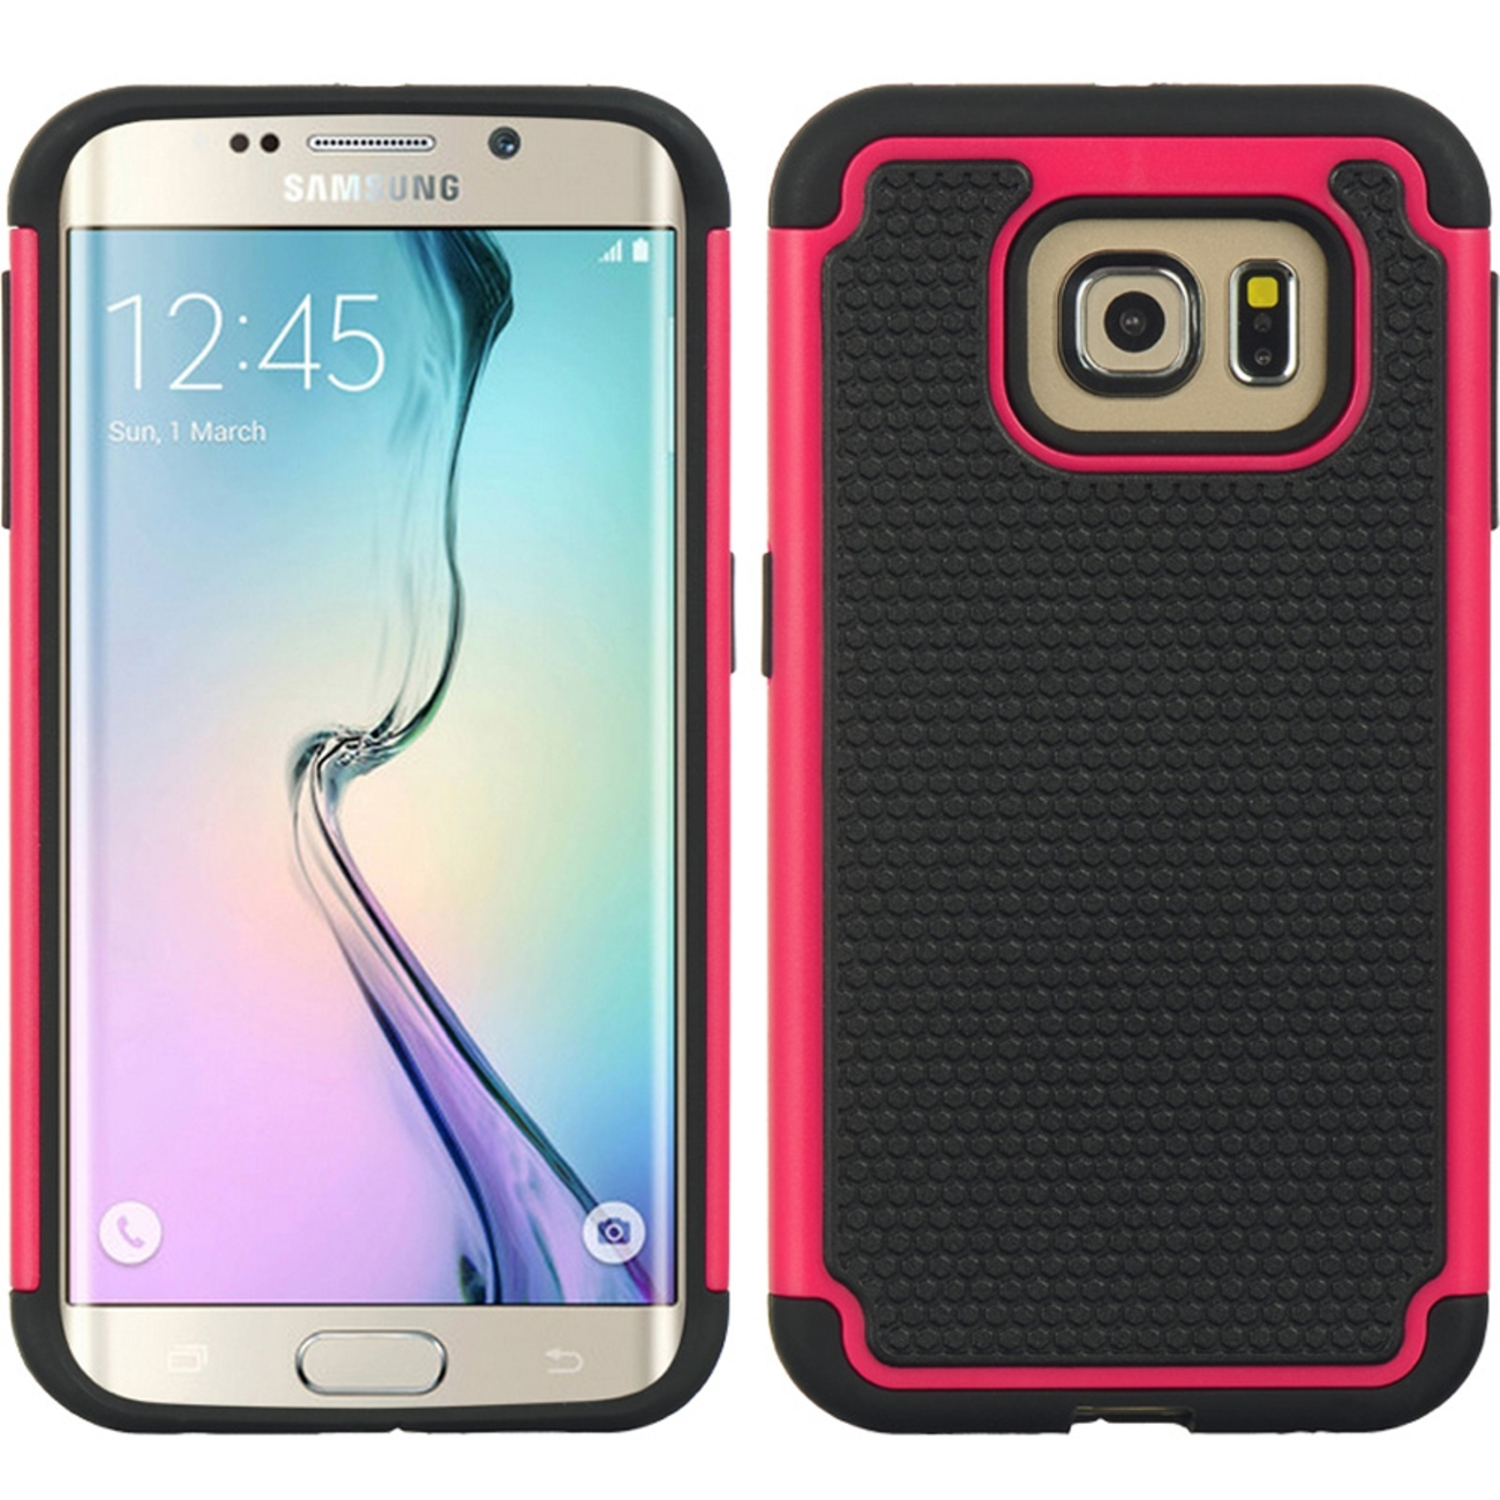 Samsung Galaxy S6 Edge Case, by Insten Dots Dual Layer [Shock Absorbing] Hybrid Hard Plastic/Soft TPU Rubber Case Cover For Samsung Galaxy S6 Edge